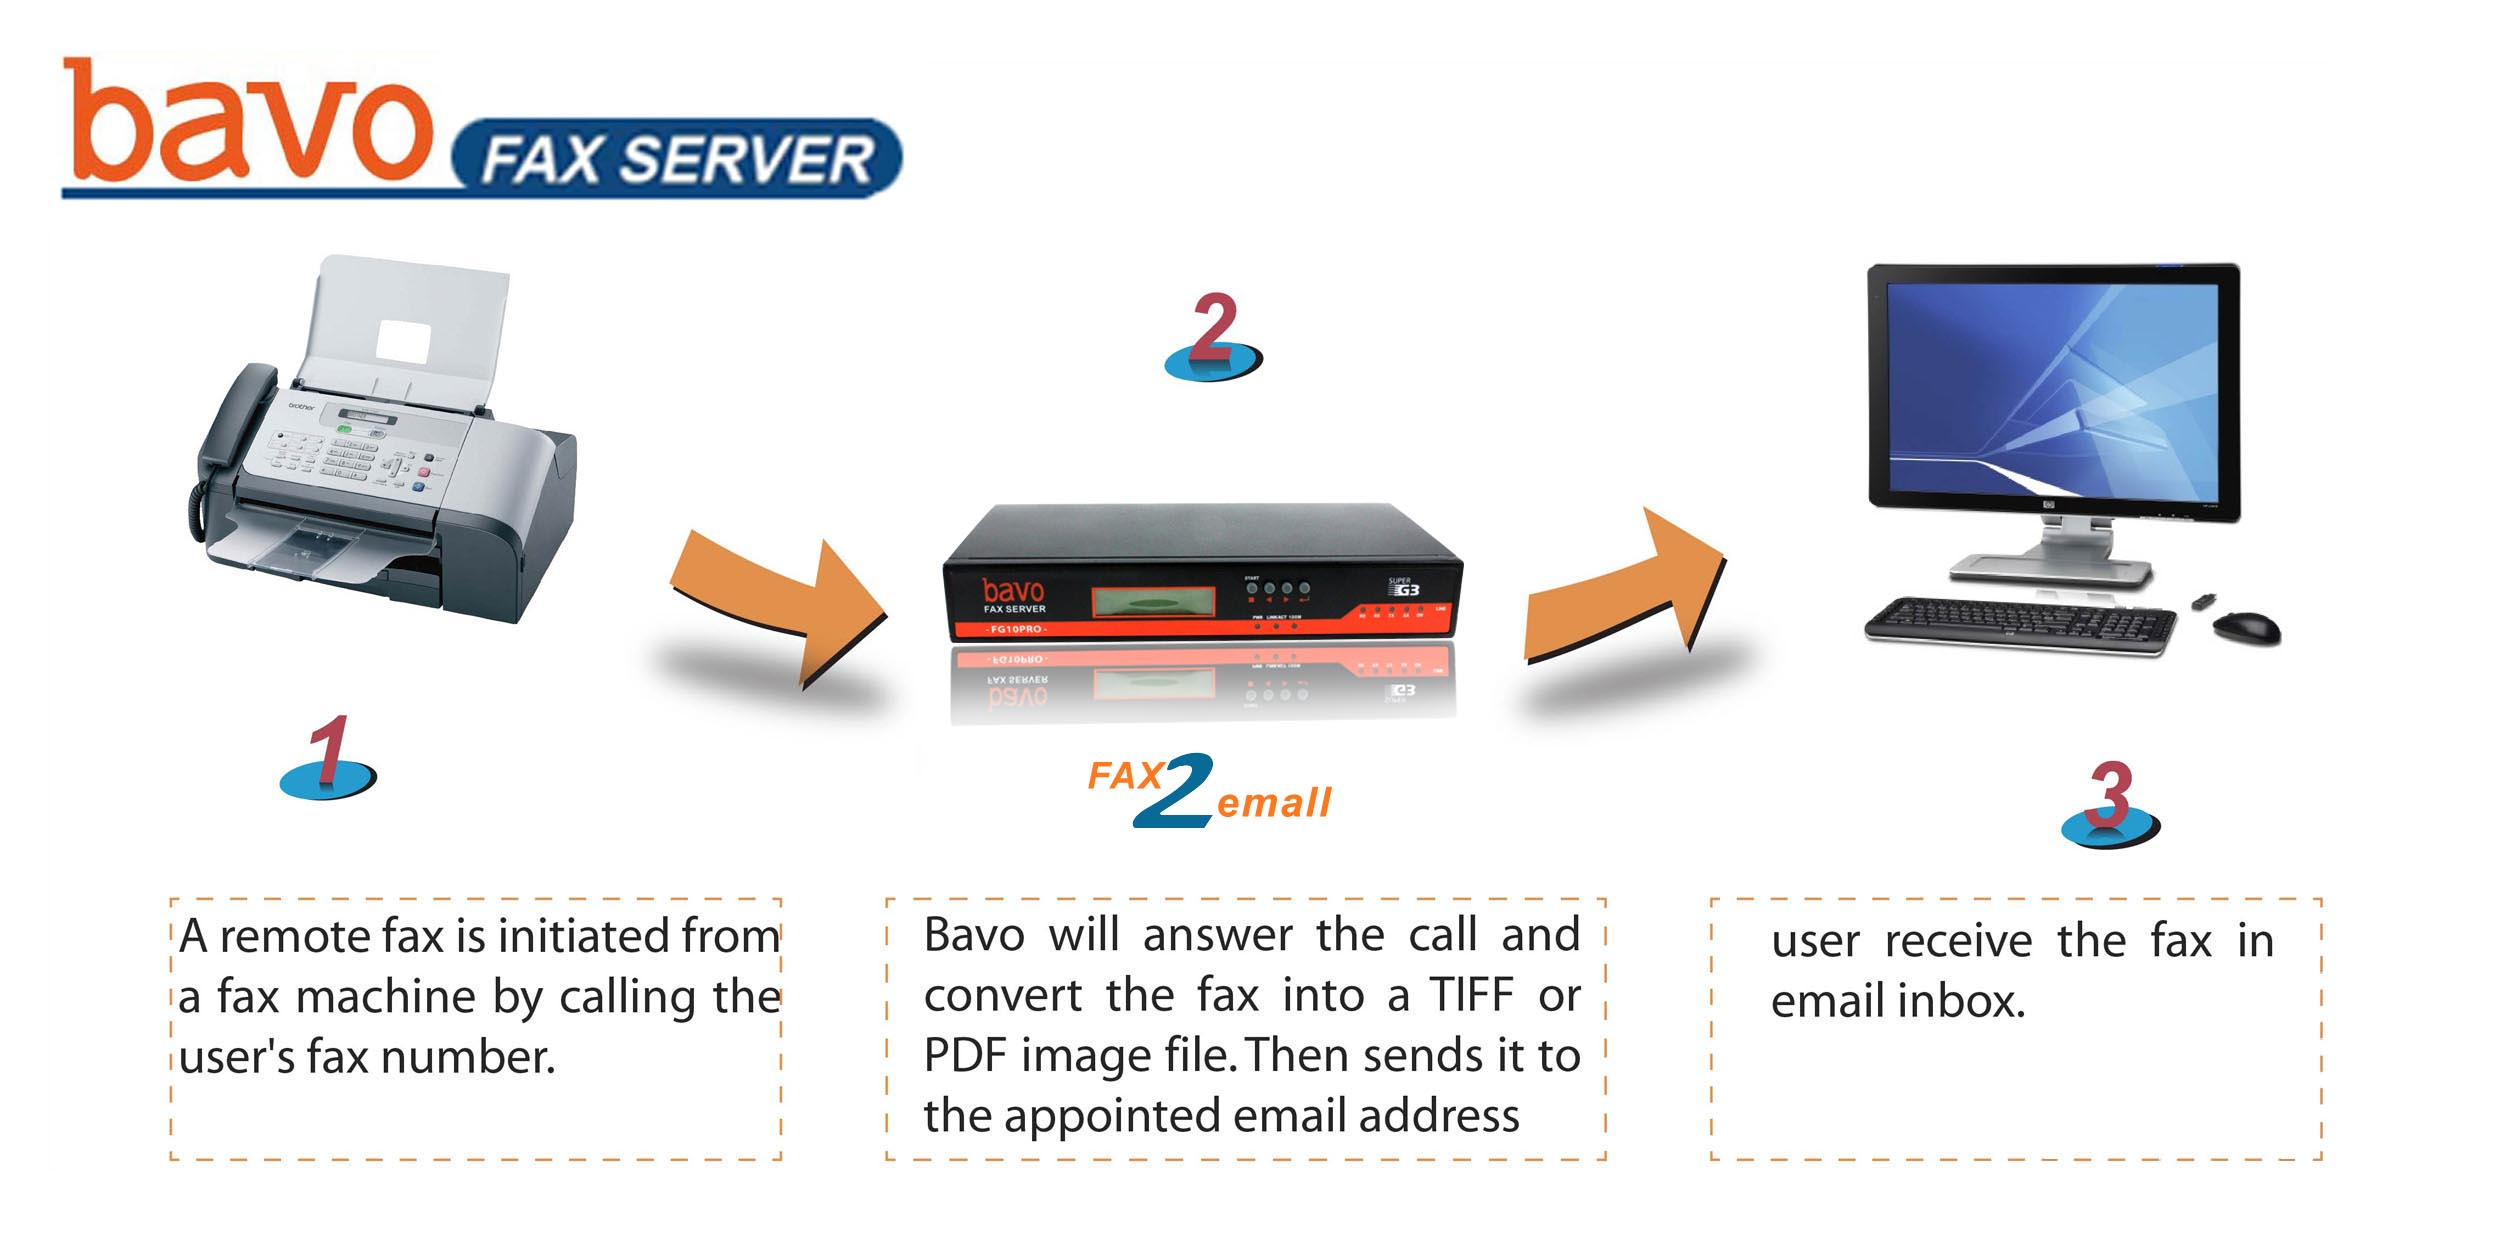 Cool image about Fax to email - it is cool